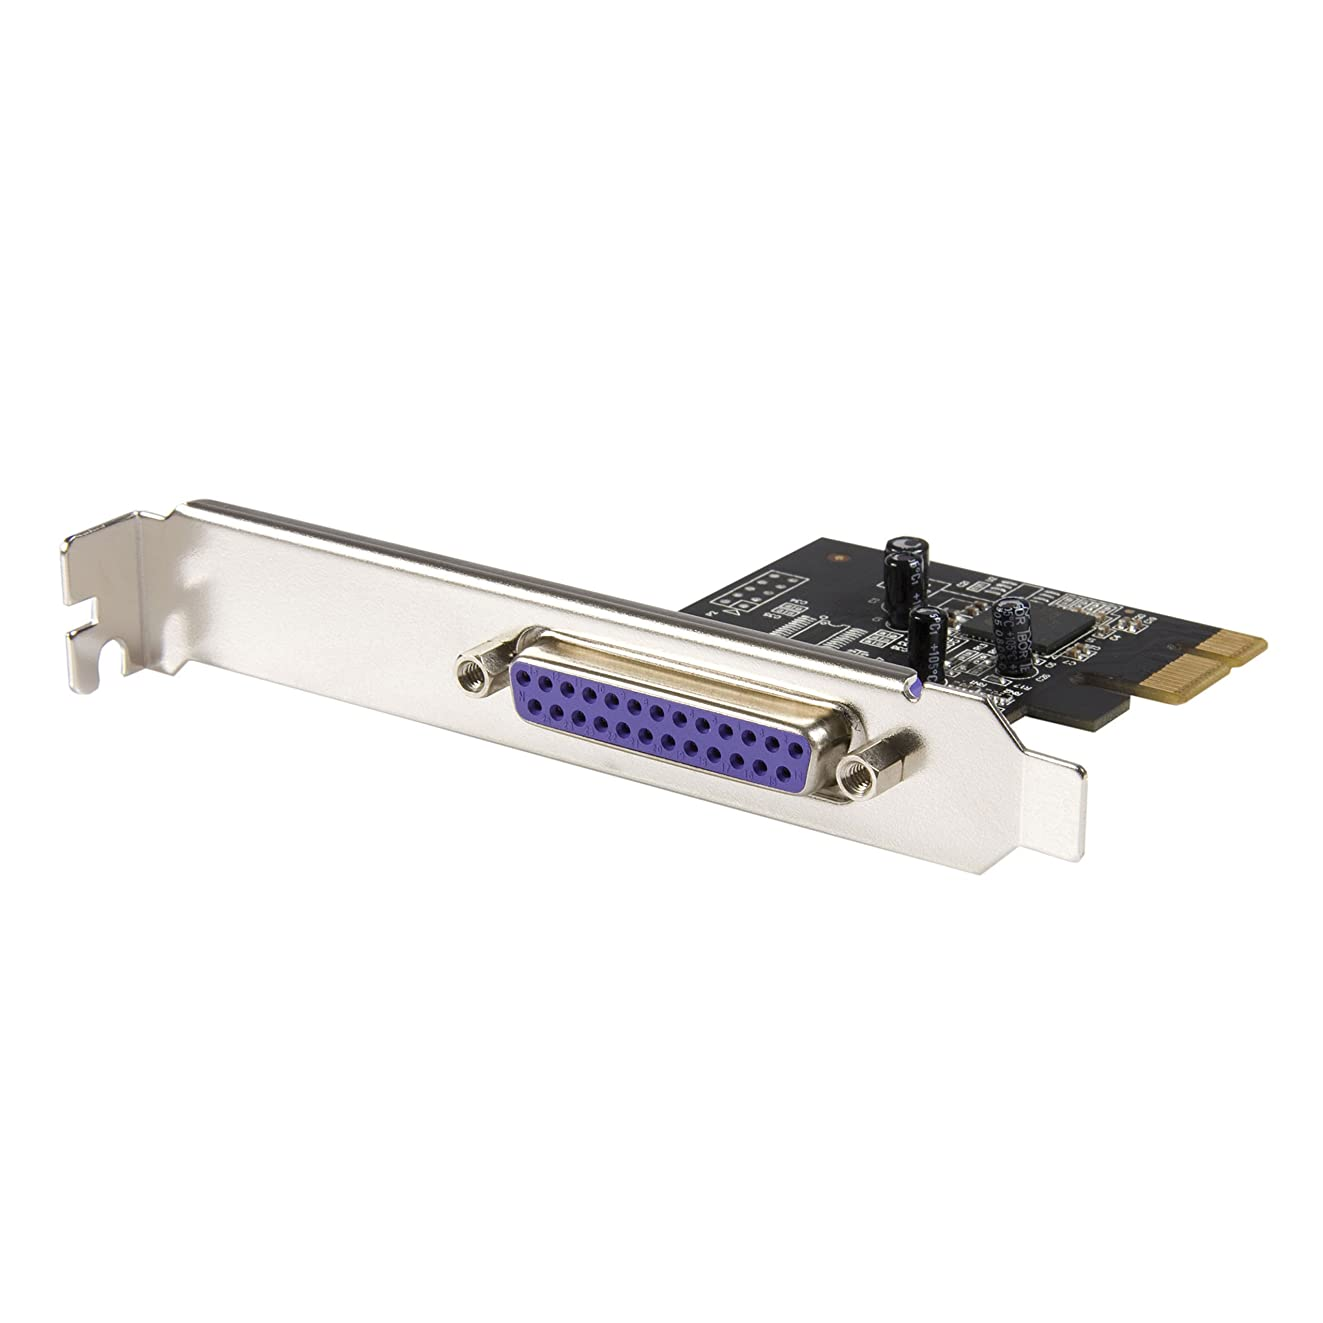 StarTech.com 1 Port PCI Express Dual Profile Parallel Adapter Card - SPP/EPP/ECP - 2x DB25 IEEE 1284 PCIe Parallel Card